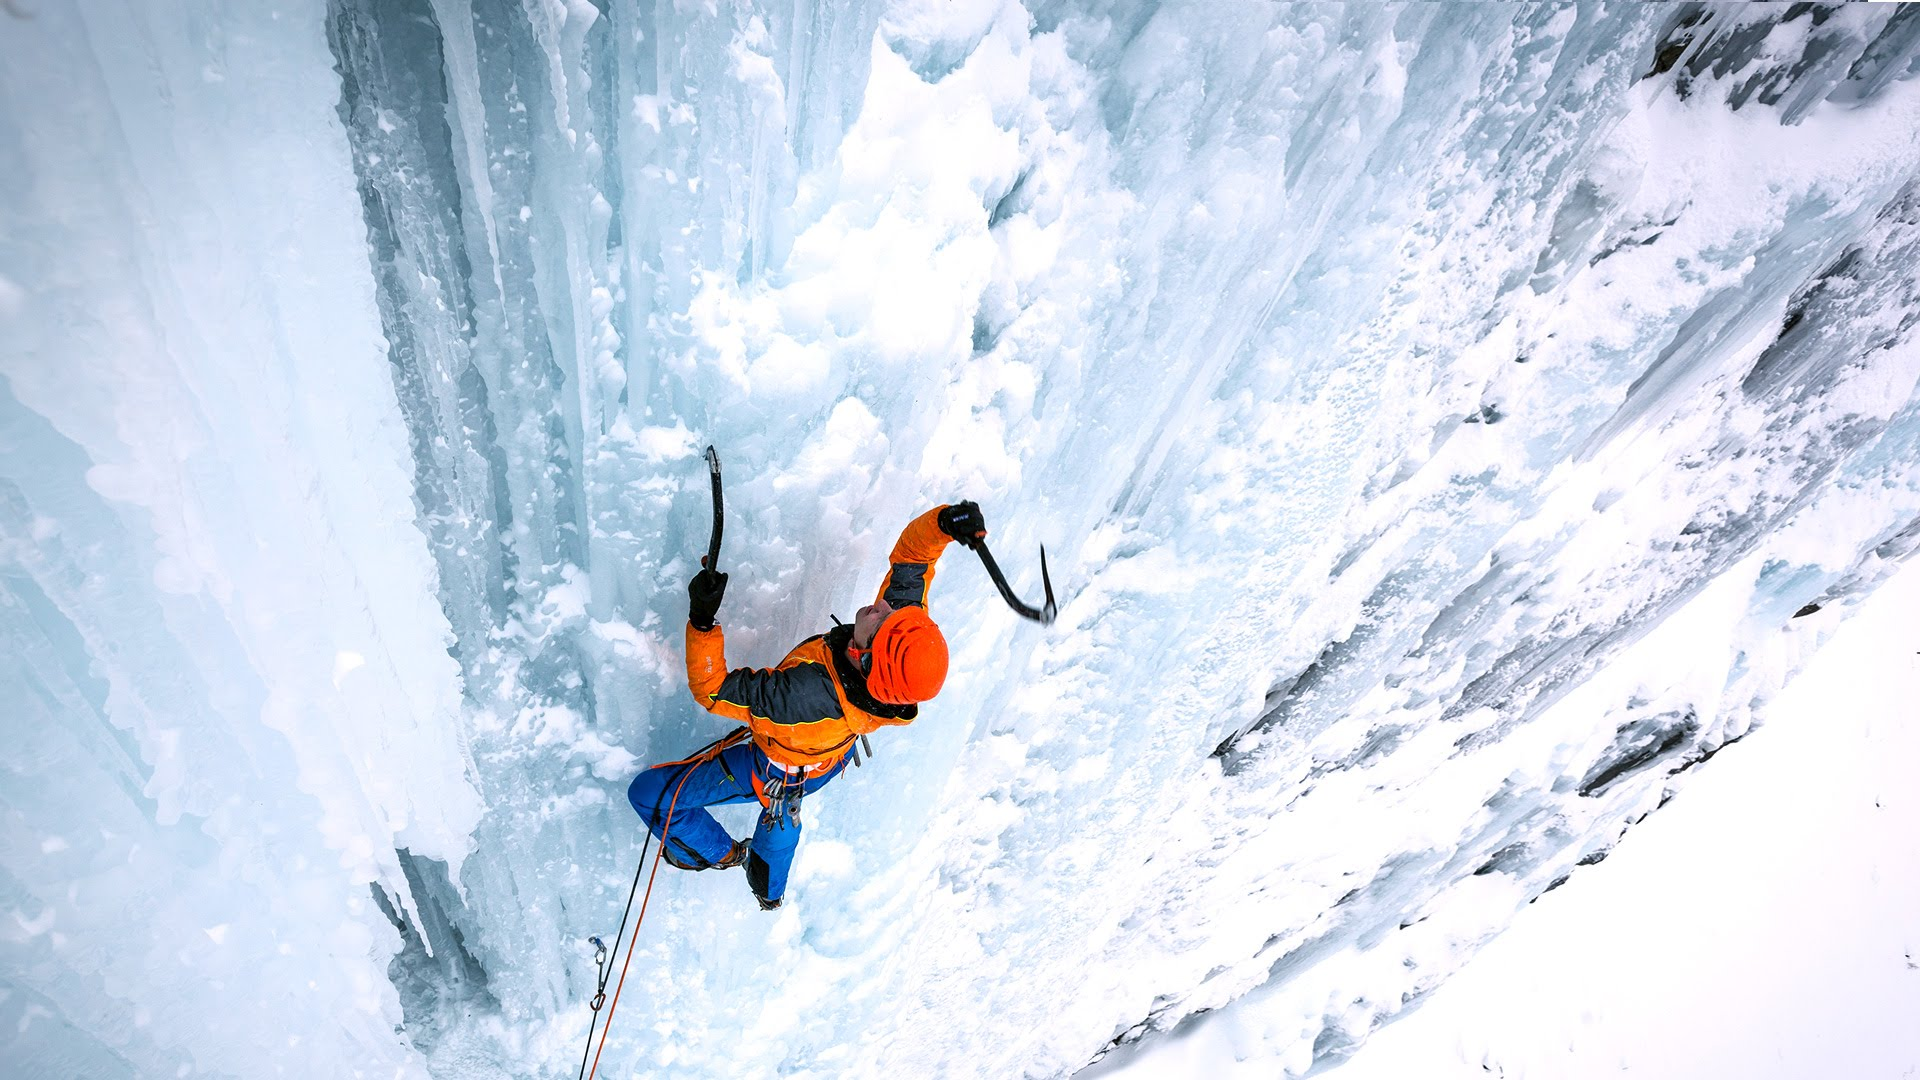 Ice Climbing Backgrounds on Wallpapers Vista